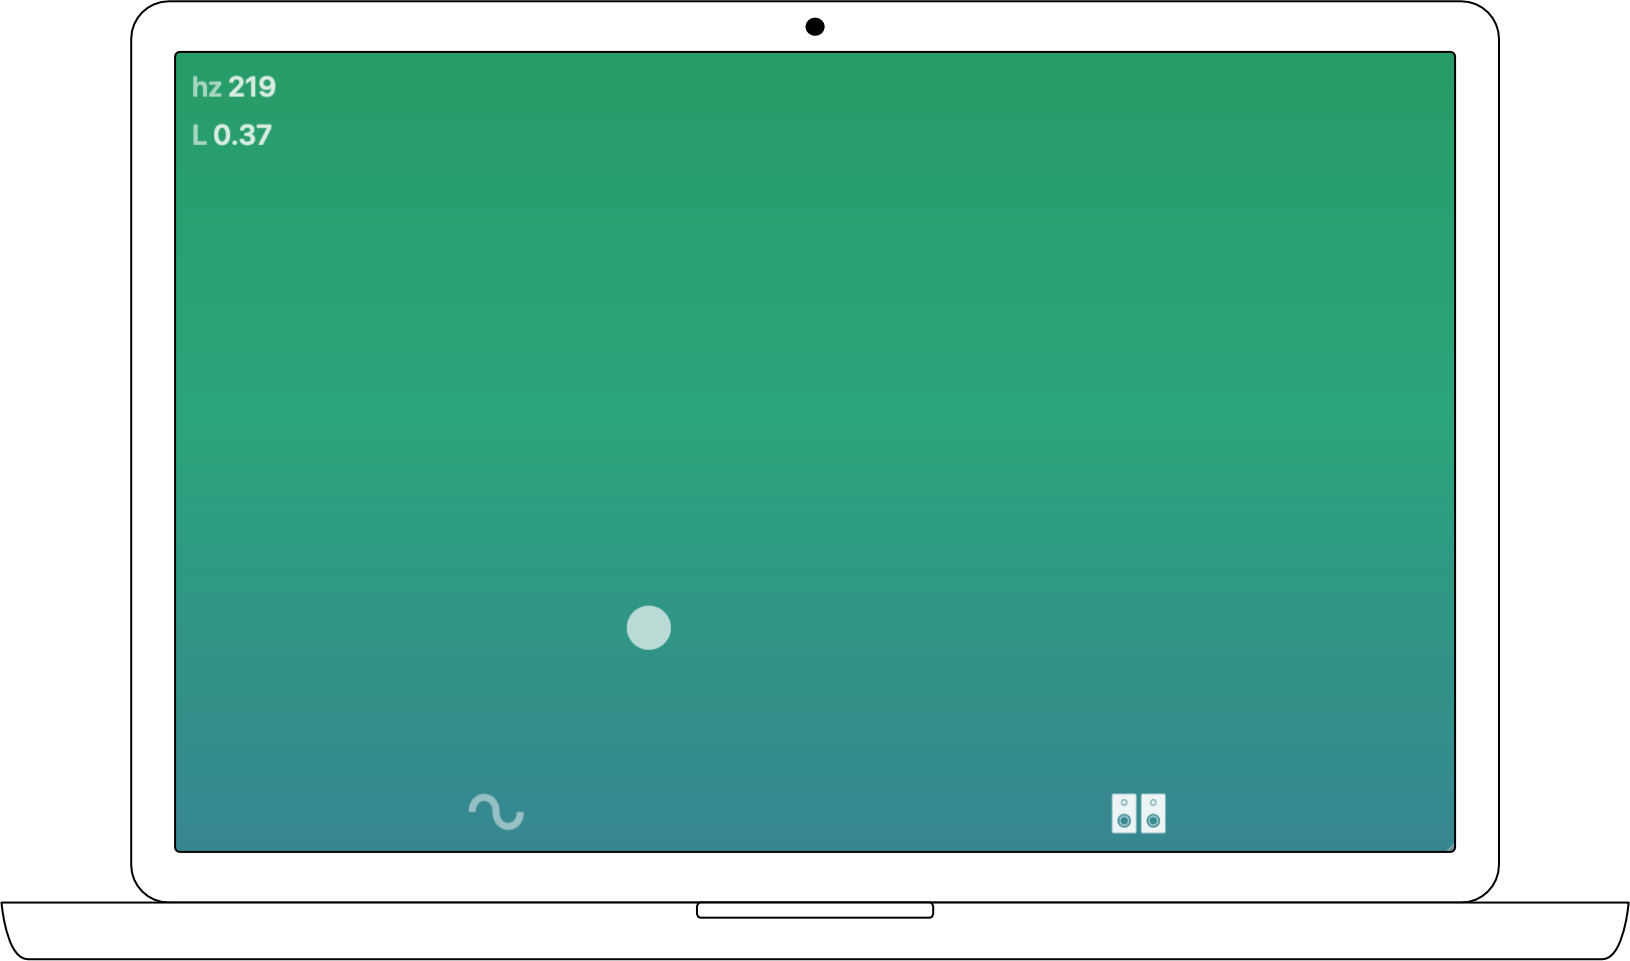 Stereo mode allows users to test stereo panning